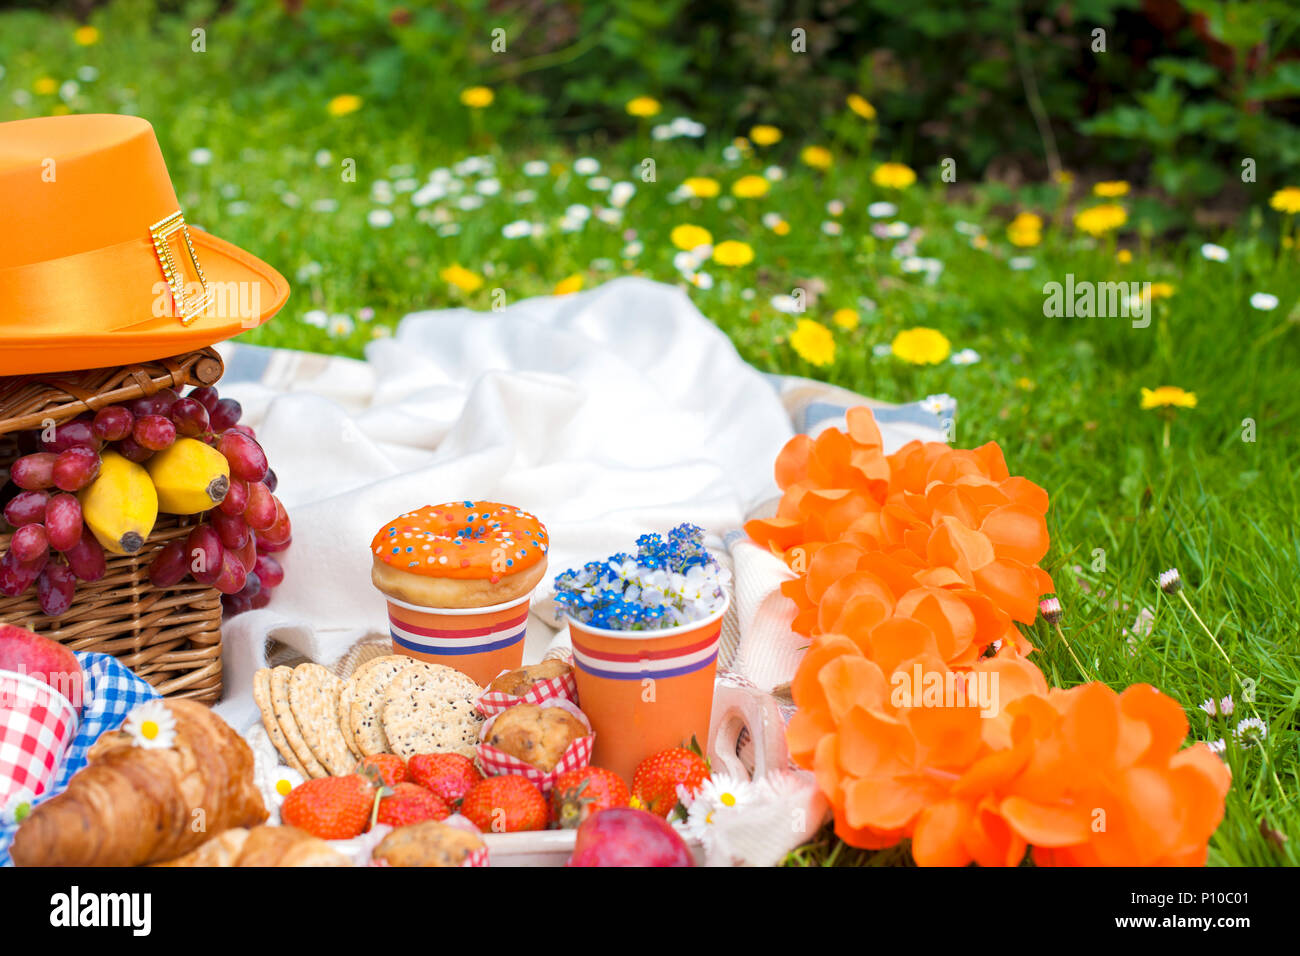 Picnic Decor Picnic In The Celebration Of The King S Day Spring In The